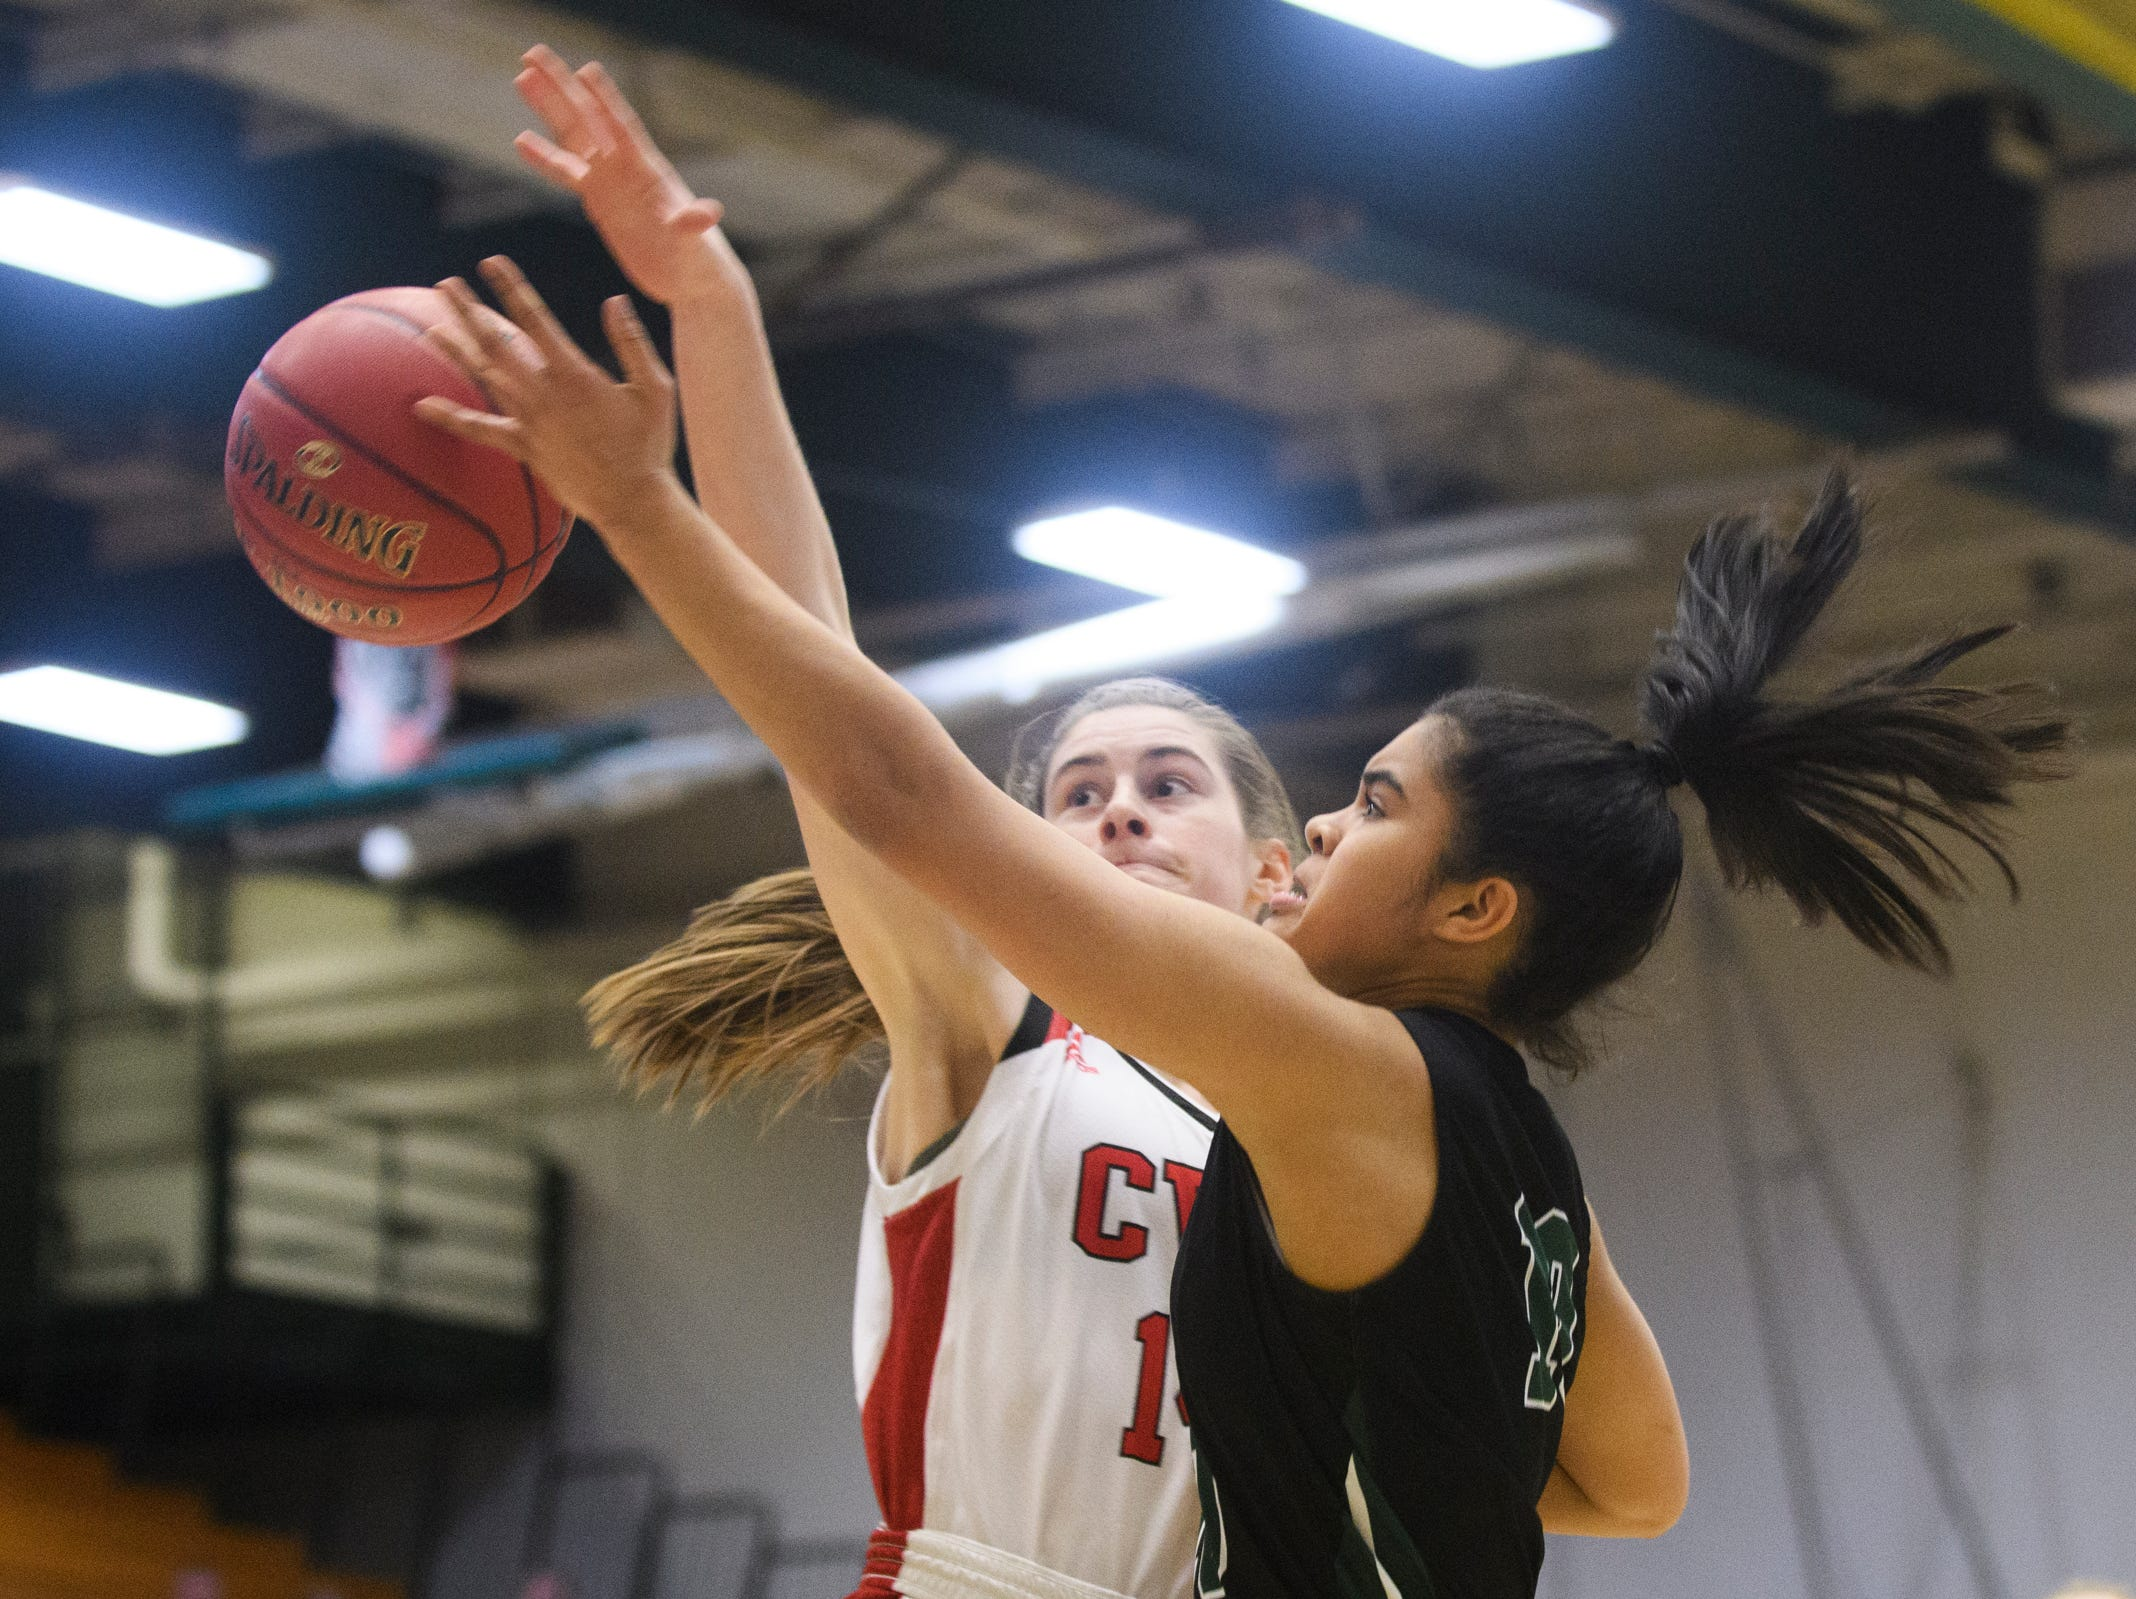 Rice's Haley Walker (10) leaps for a lay up past CVU's Julia Blanck (14) during the girls semifinal basketball game between the Rice Green Knights and the Champlain Valley Union Redhawks at Patrick Gym on Wednesday nigh March 6, 2019 in Burlington, Vermont.